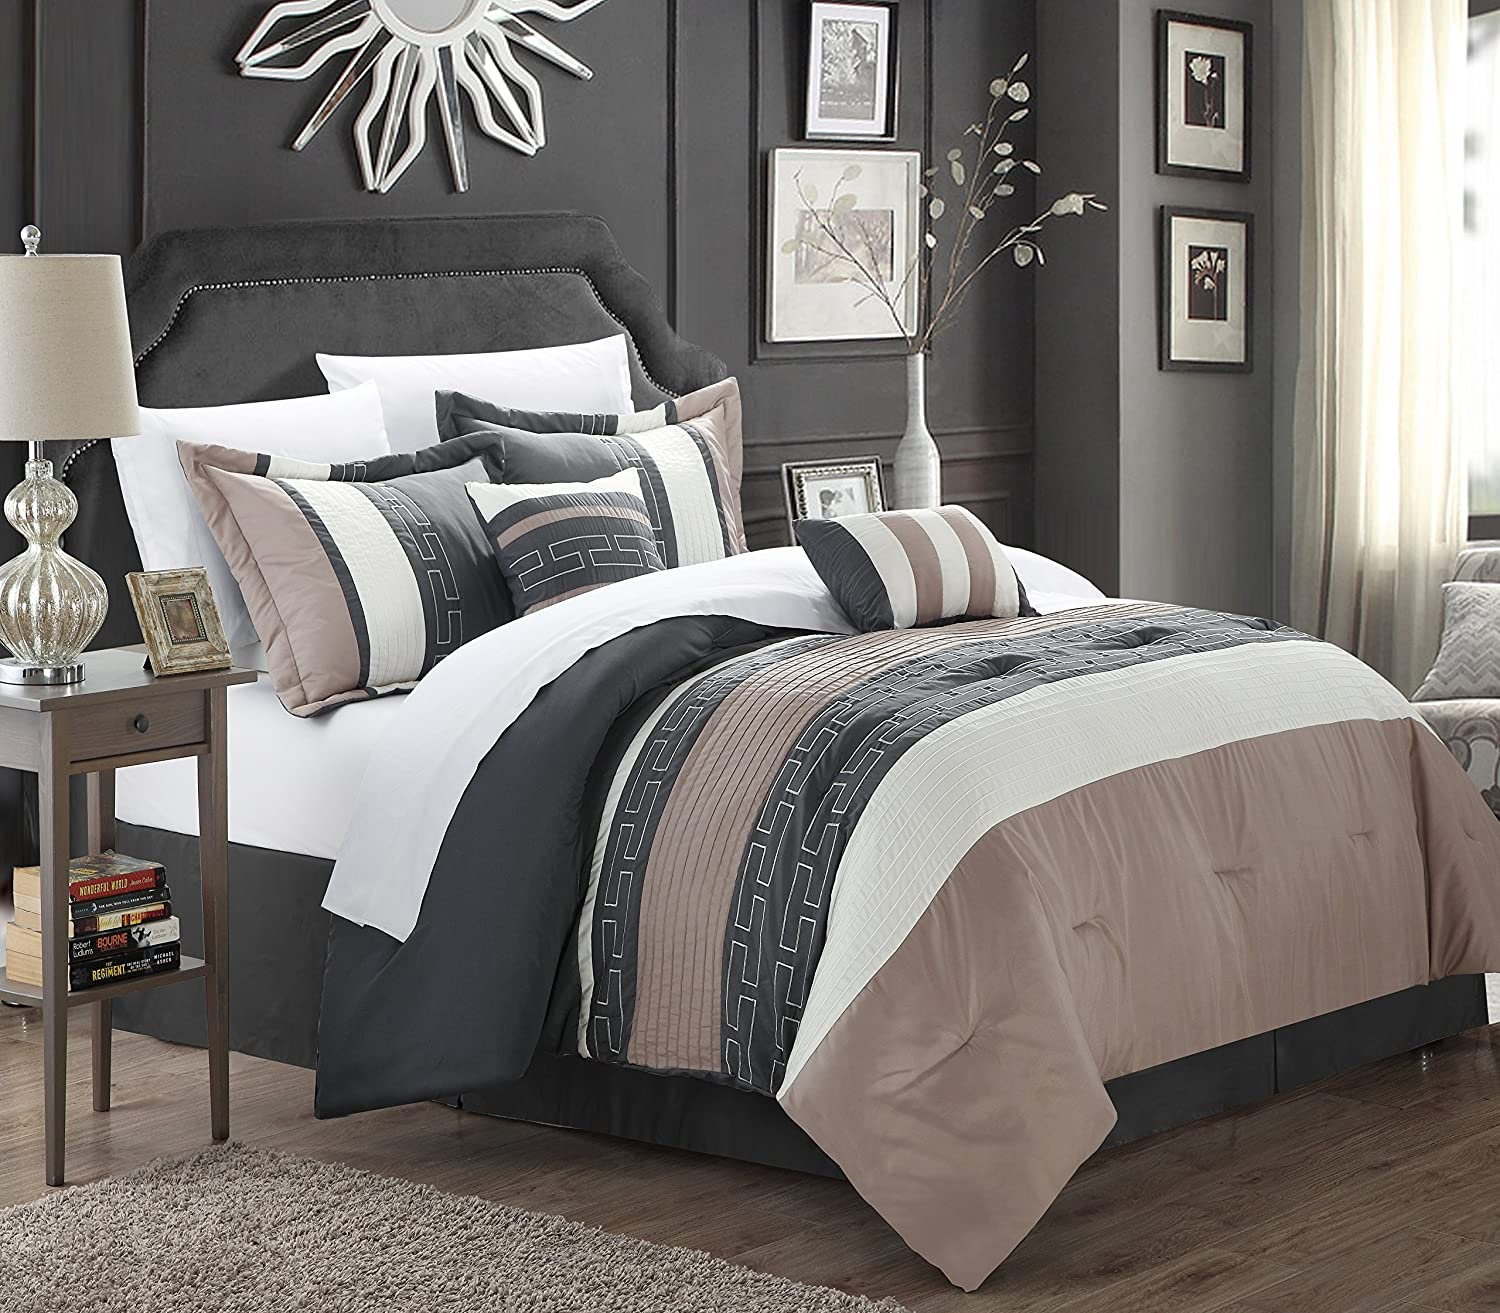 Amazon com chic home carlton 6 piece comforter set king size taupe home kitchen